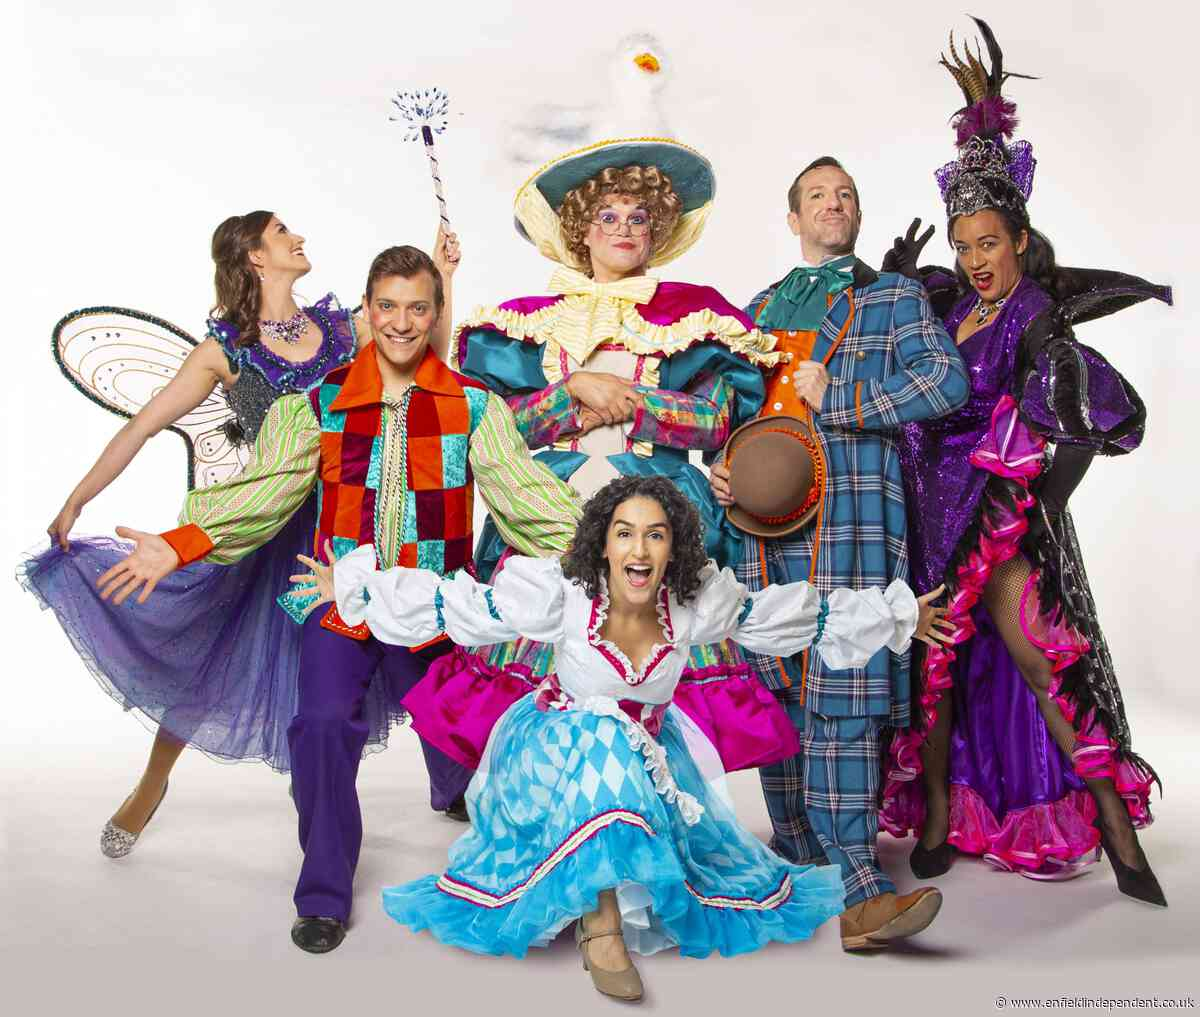 Millfield Theatre's Christmas panto promises festive fun for all the family